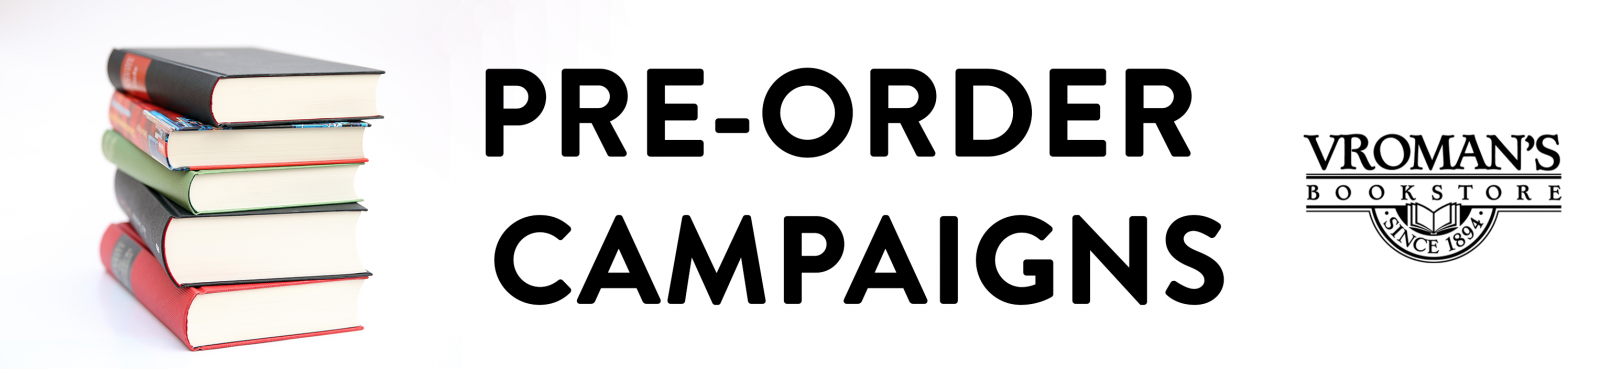 "Banner that reads ""Pre-Order Campaigns"" with black text and a white background and a picture of a stack of books"